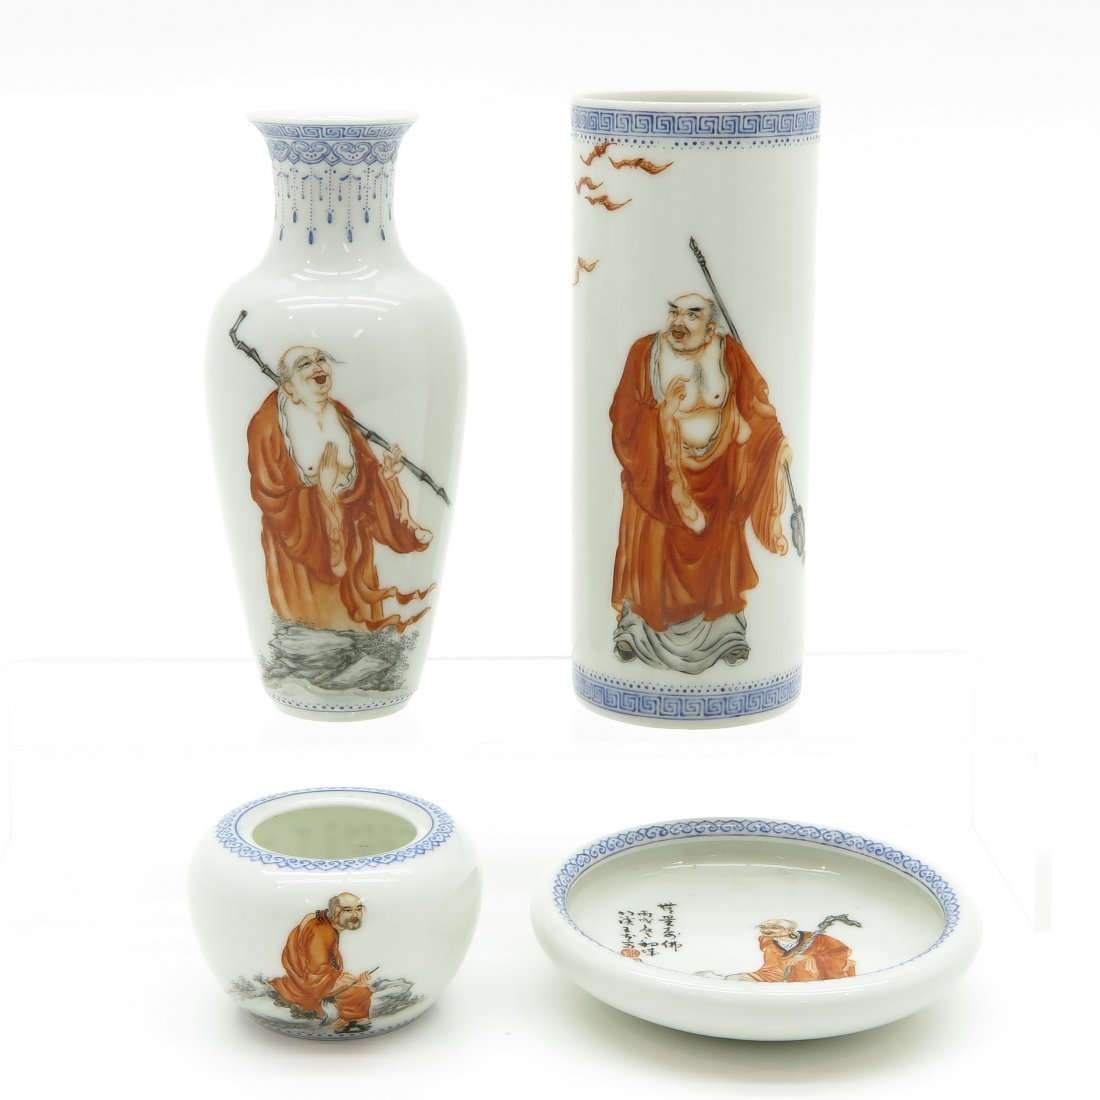 A Beautiful Lot of Republic Period China Porcelain